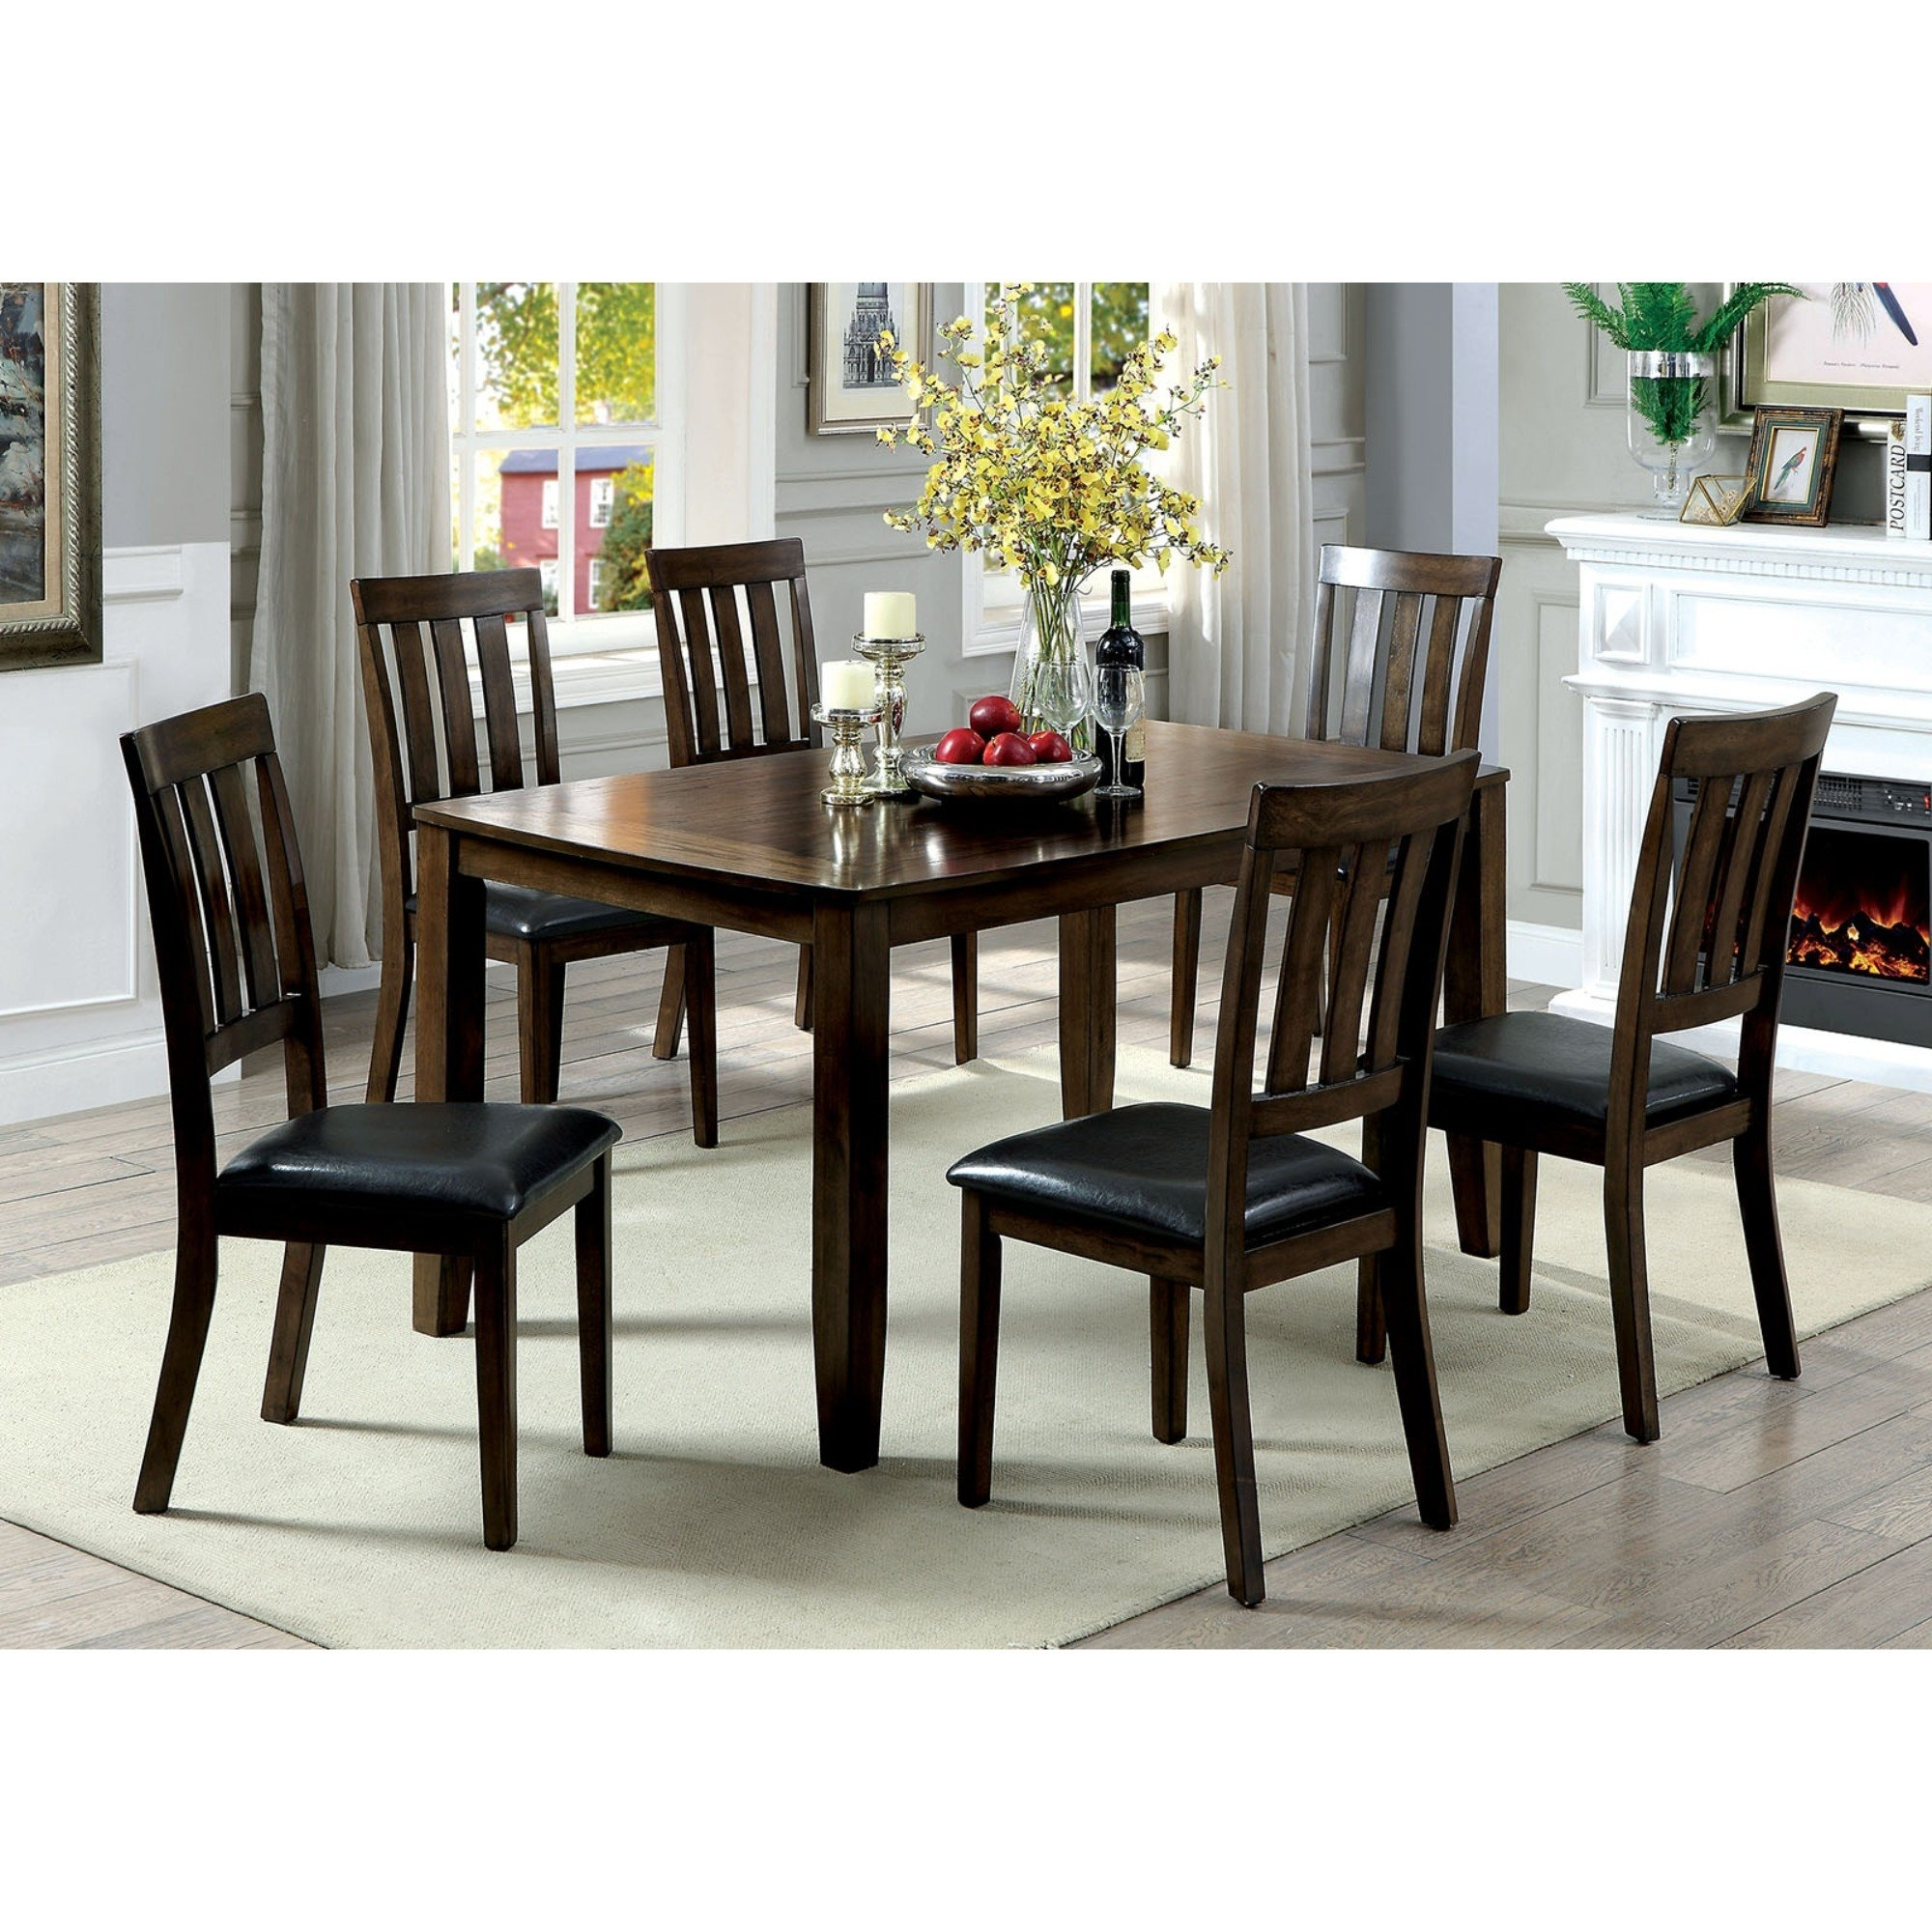 Millwood Pines Devon Wooden 7 Piece Counter Height Dining Table Set For Latest Candice Ii 7 Piece Extension Rectangular Dining Sets With Uph Side Chairs (Photo 5 of 20)